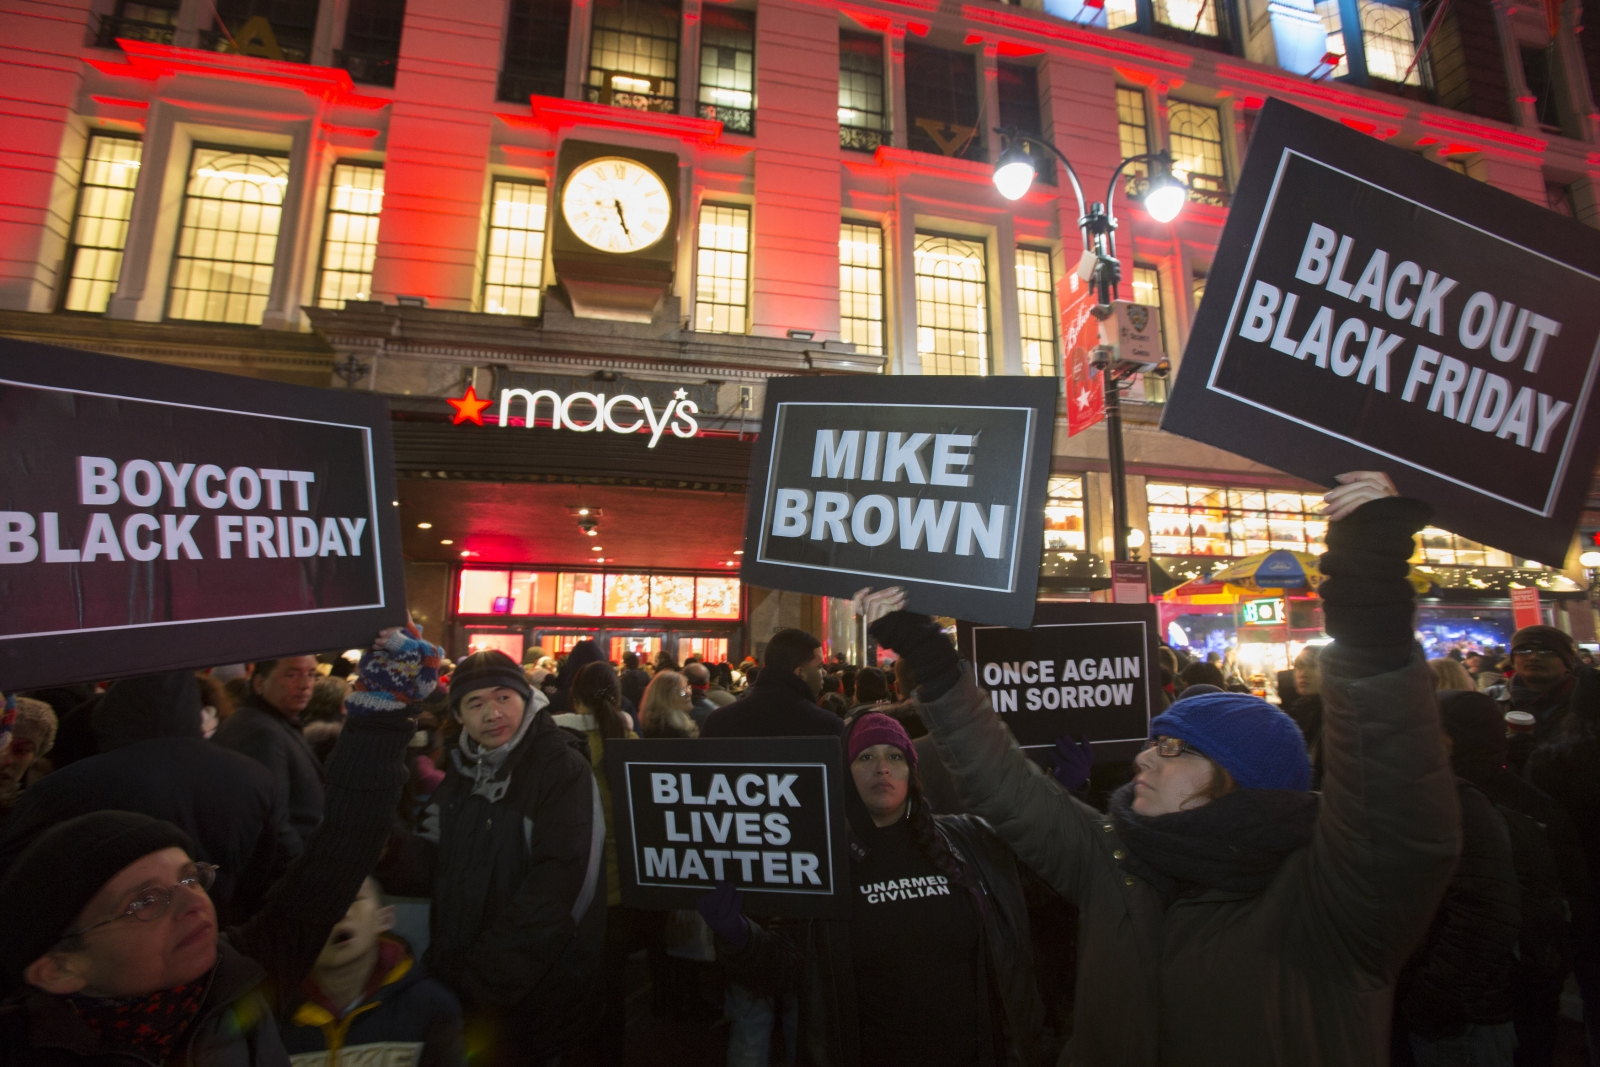 Protesters hold signs aloft outside Macy's before the kick off of Black Friday sales in New York November 27, 2014. Select stores opened Thursday to kick off the Black Friday sales, with the Friday after Thanksgiving typically being the busiest shopping